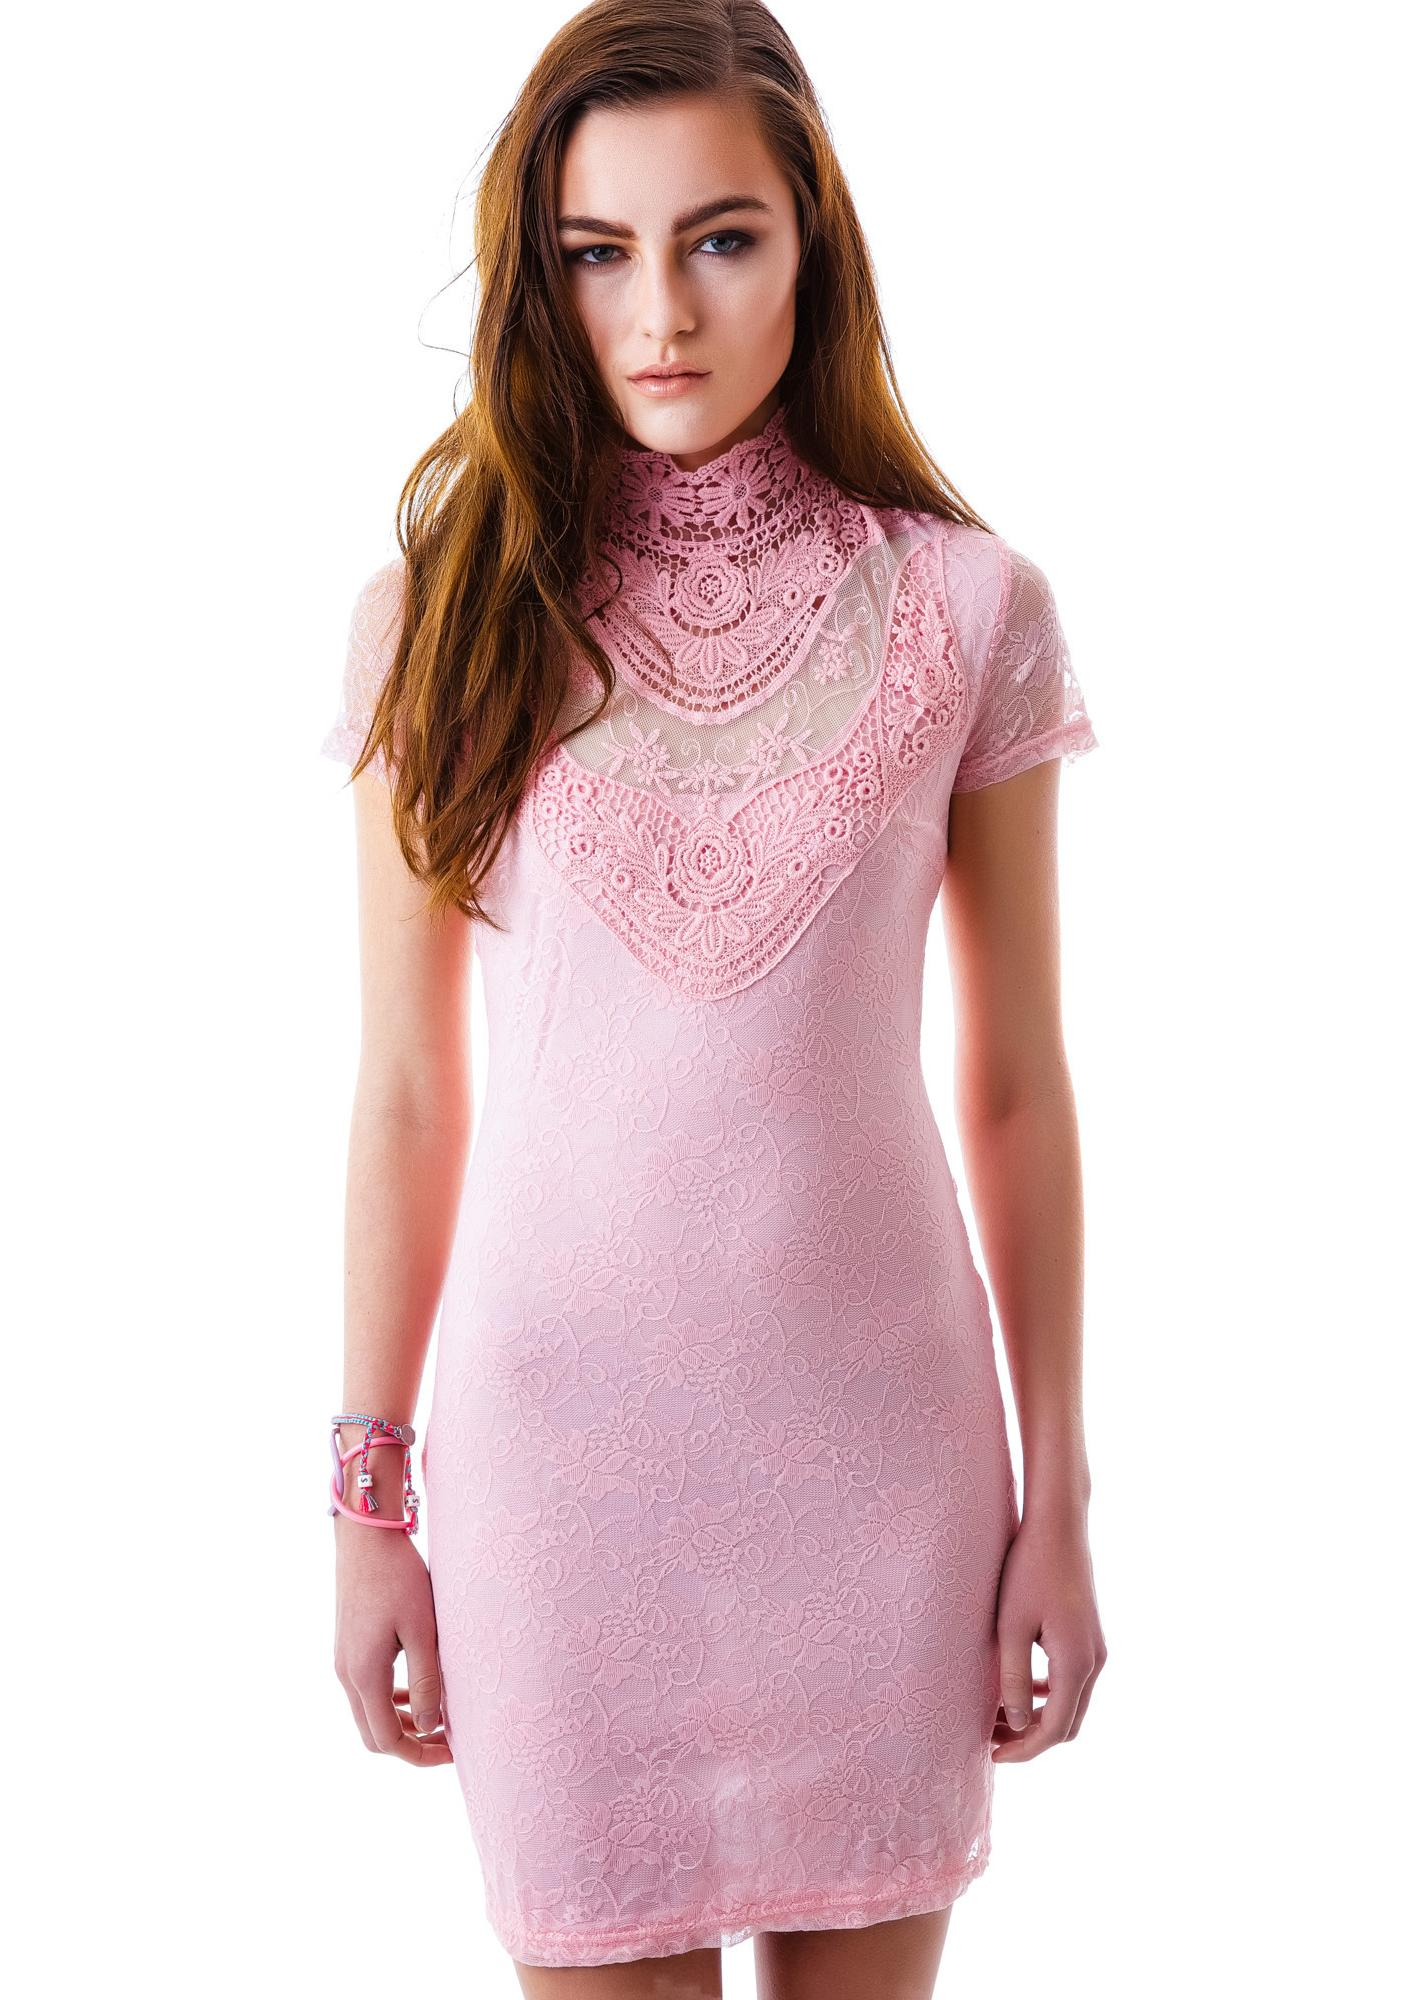 Pretty in Peony Lace Dress